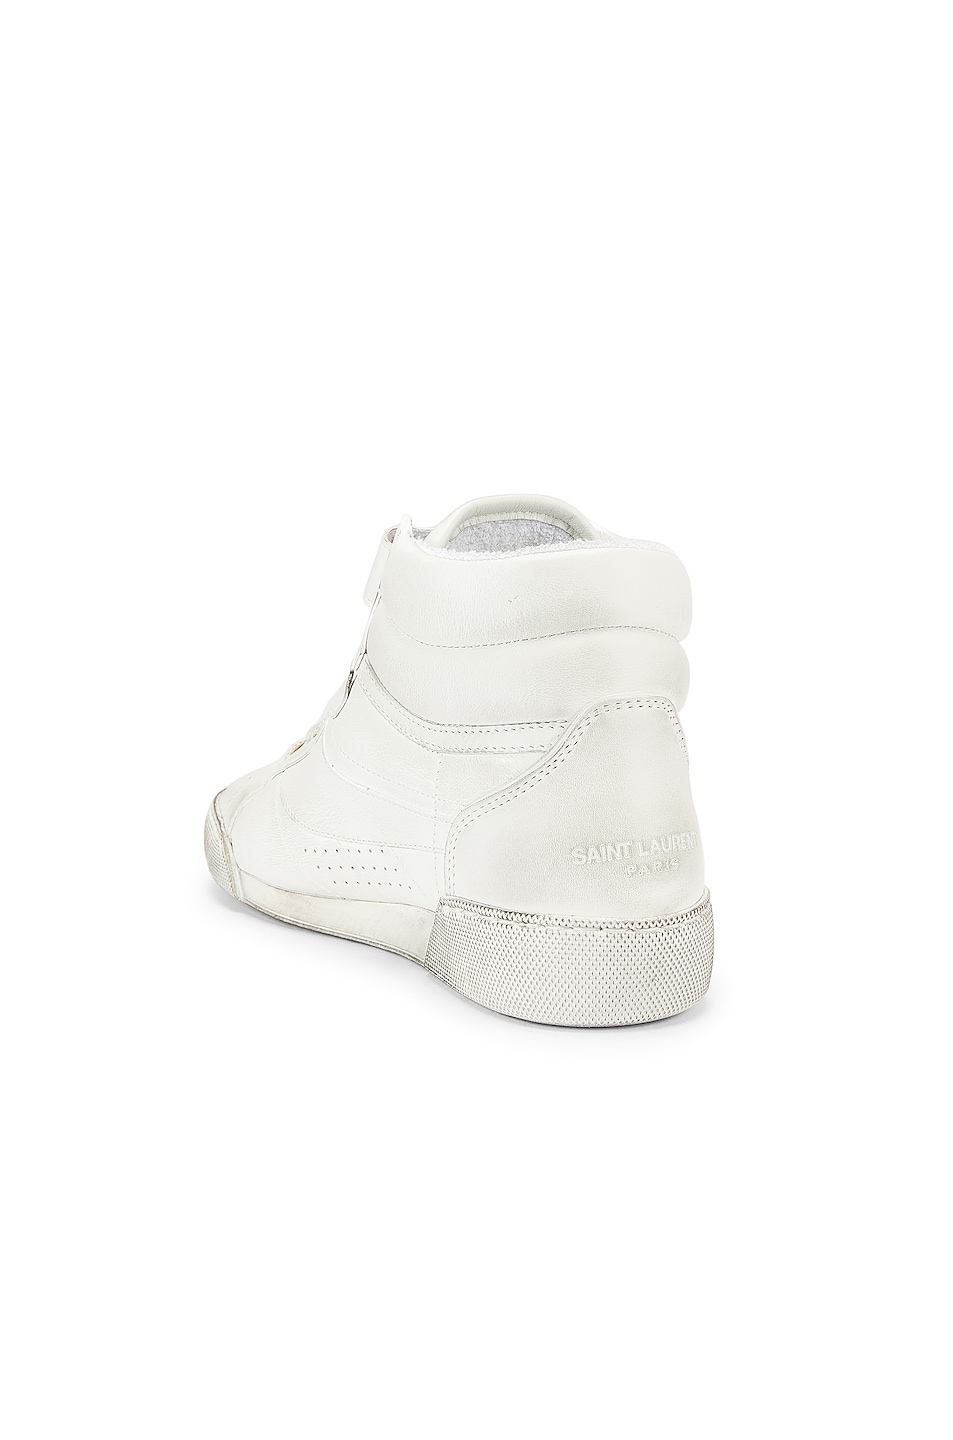 Image 3 of Saint Laurent High Top Sneaker in White